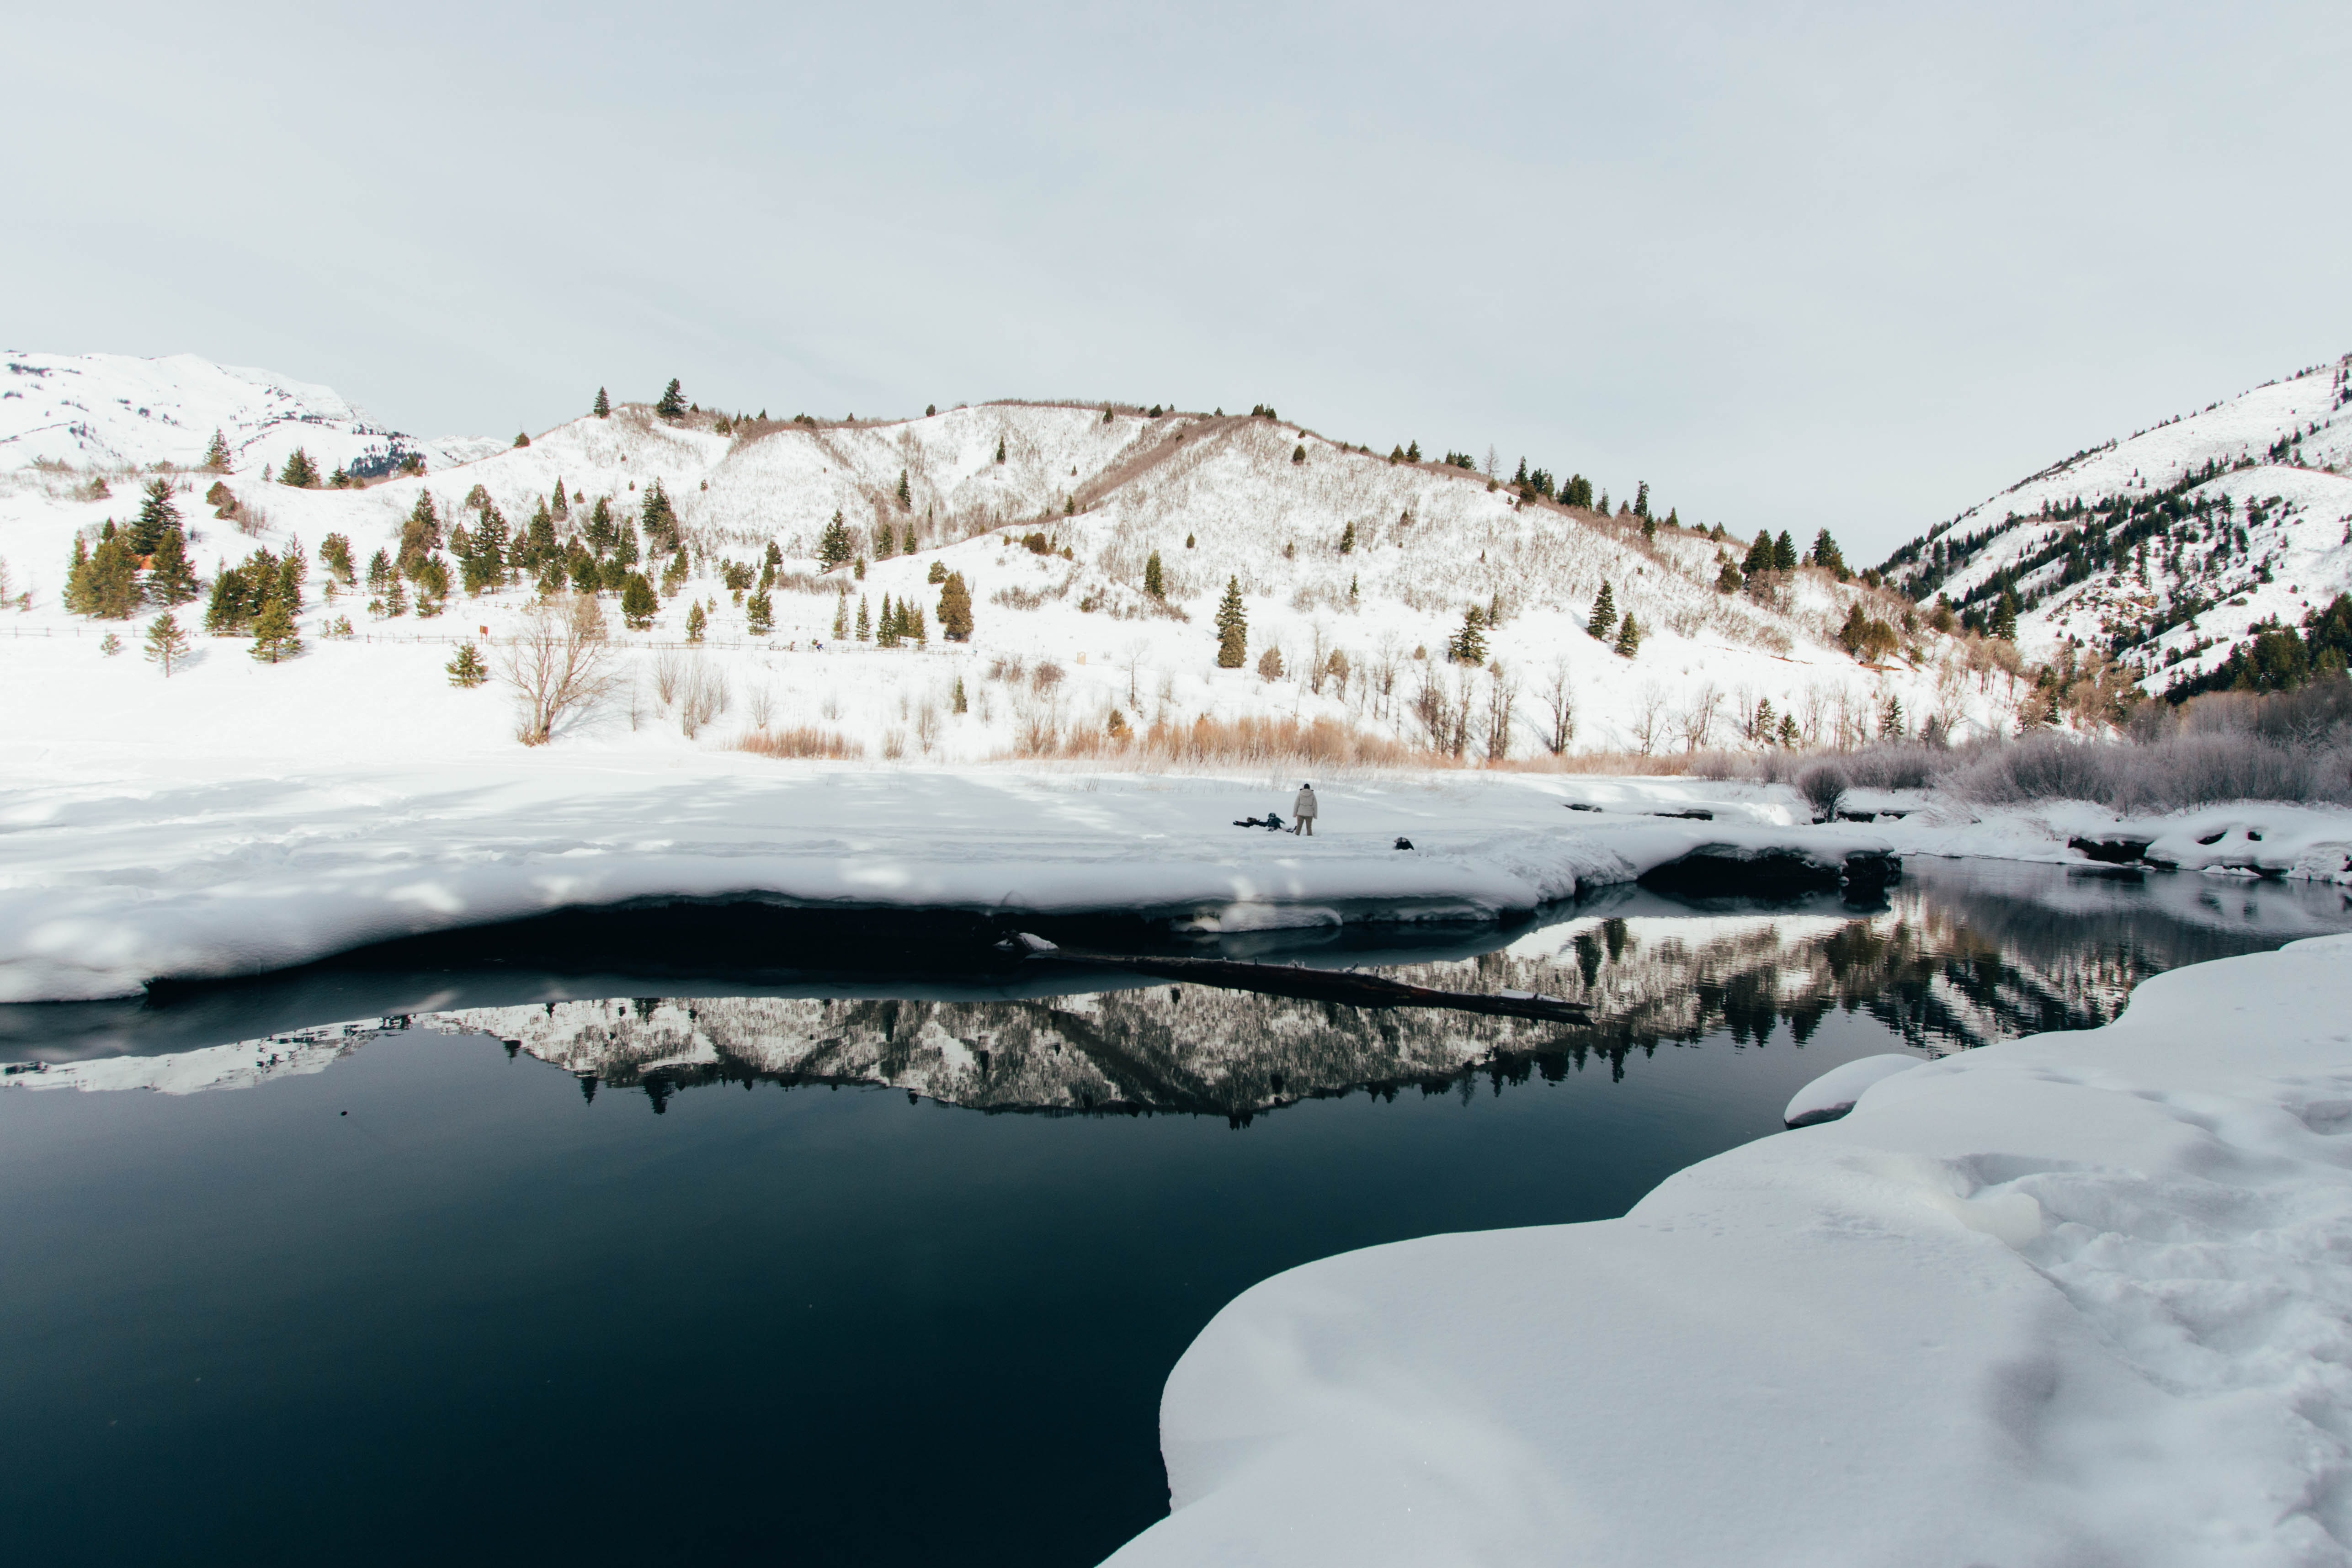 The reflections of a snow covered mountain  in a dark lake